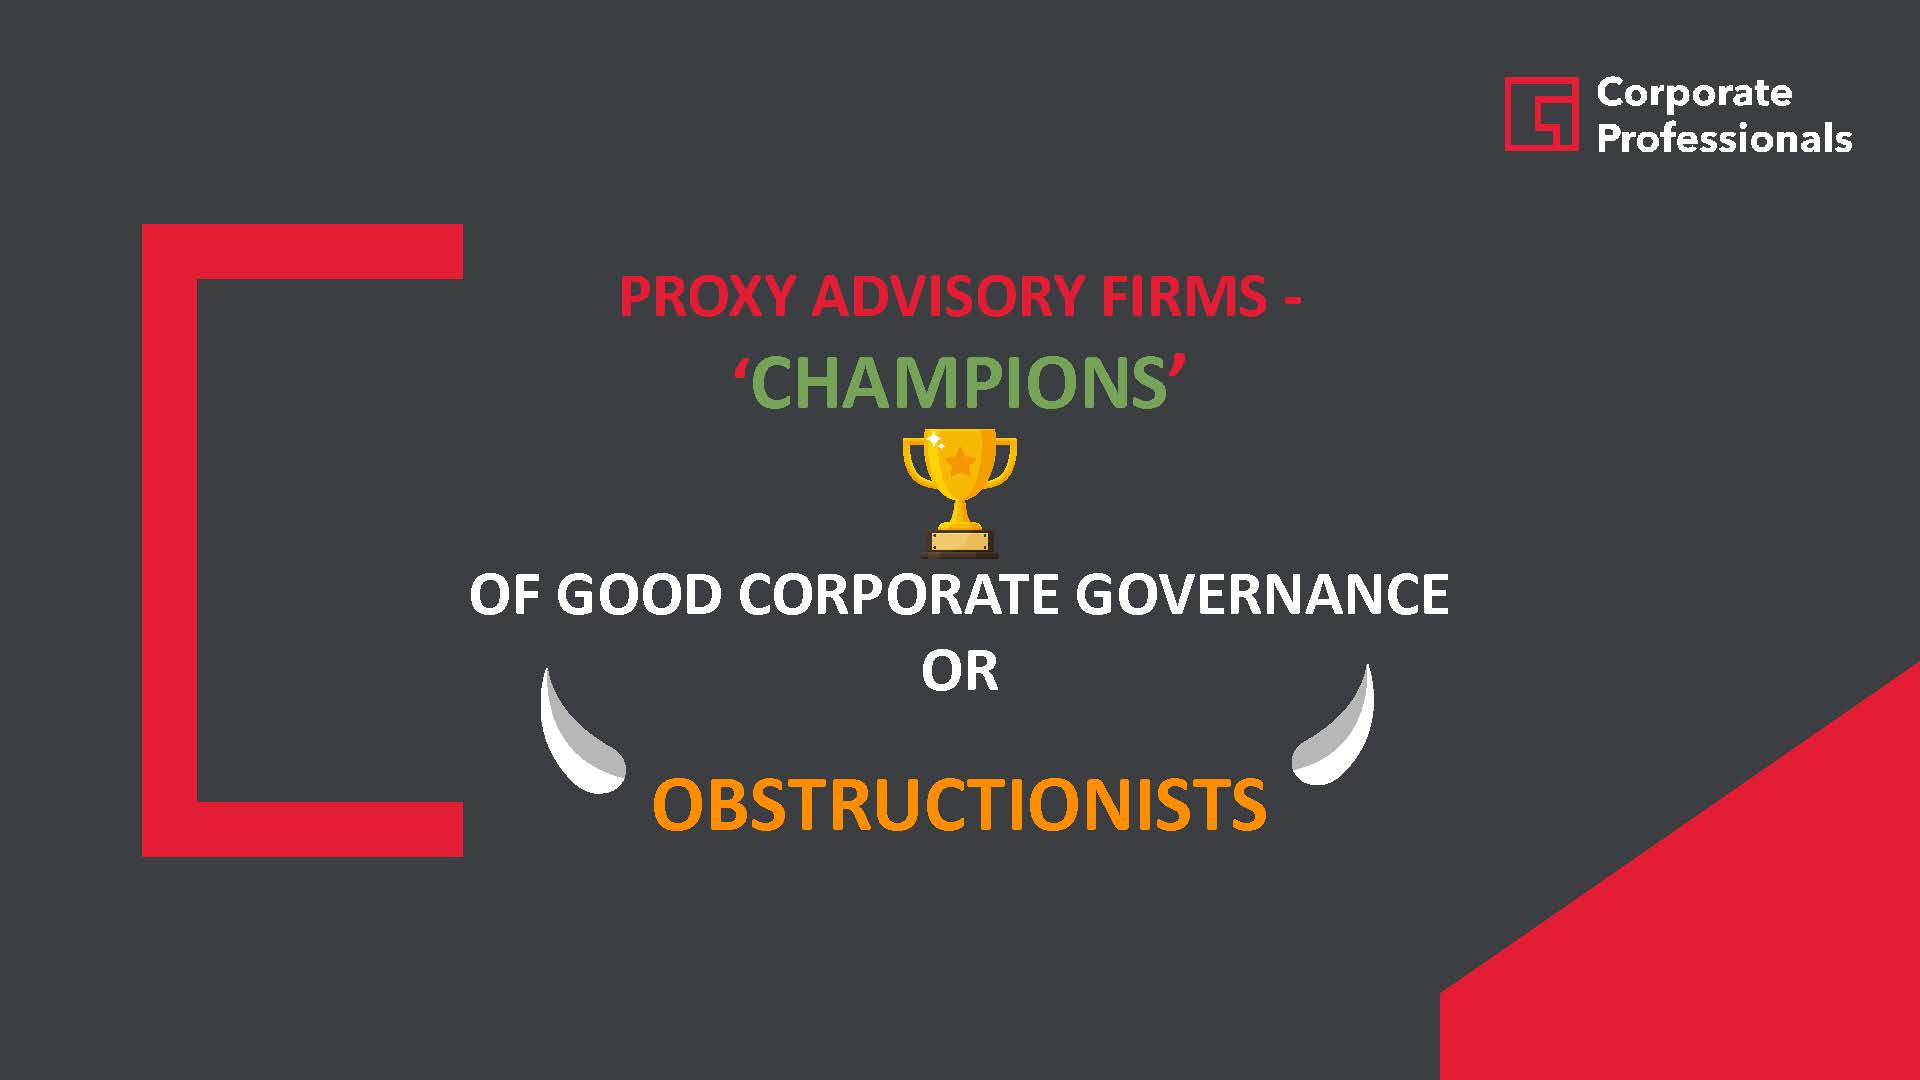 Proxy Advisory Firms   Champions of Good Corporate Governance or Obstructionists